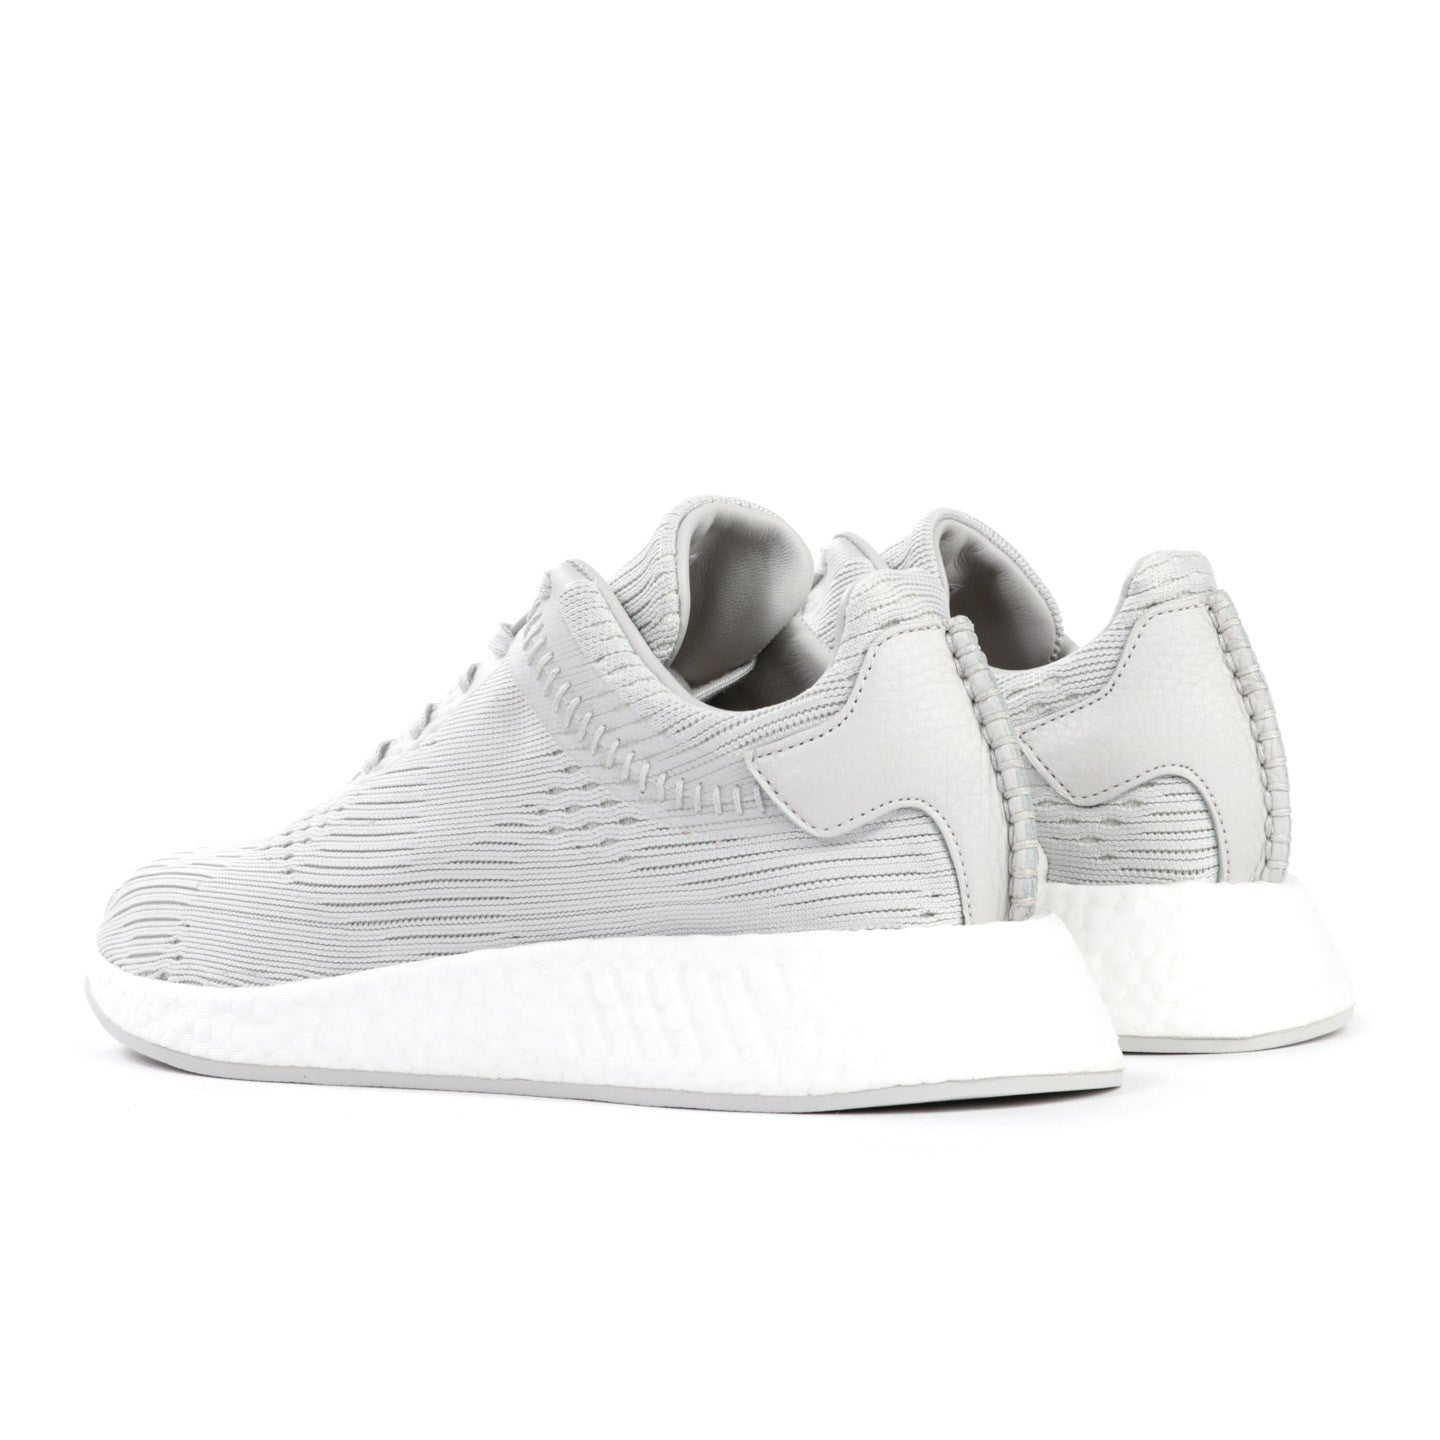 66a593dd93566 ADIDAS ORIGINALS BY WING + HORNS NMD R2 PRIME KNIT HINT GREY